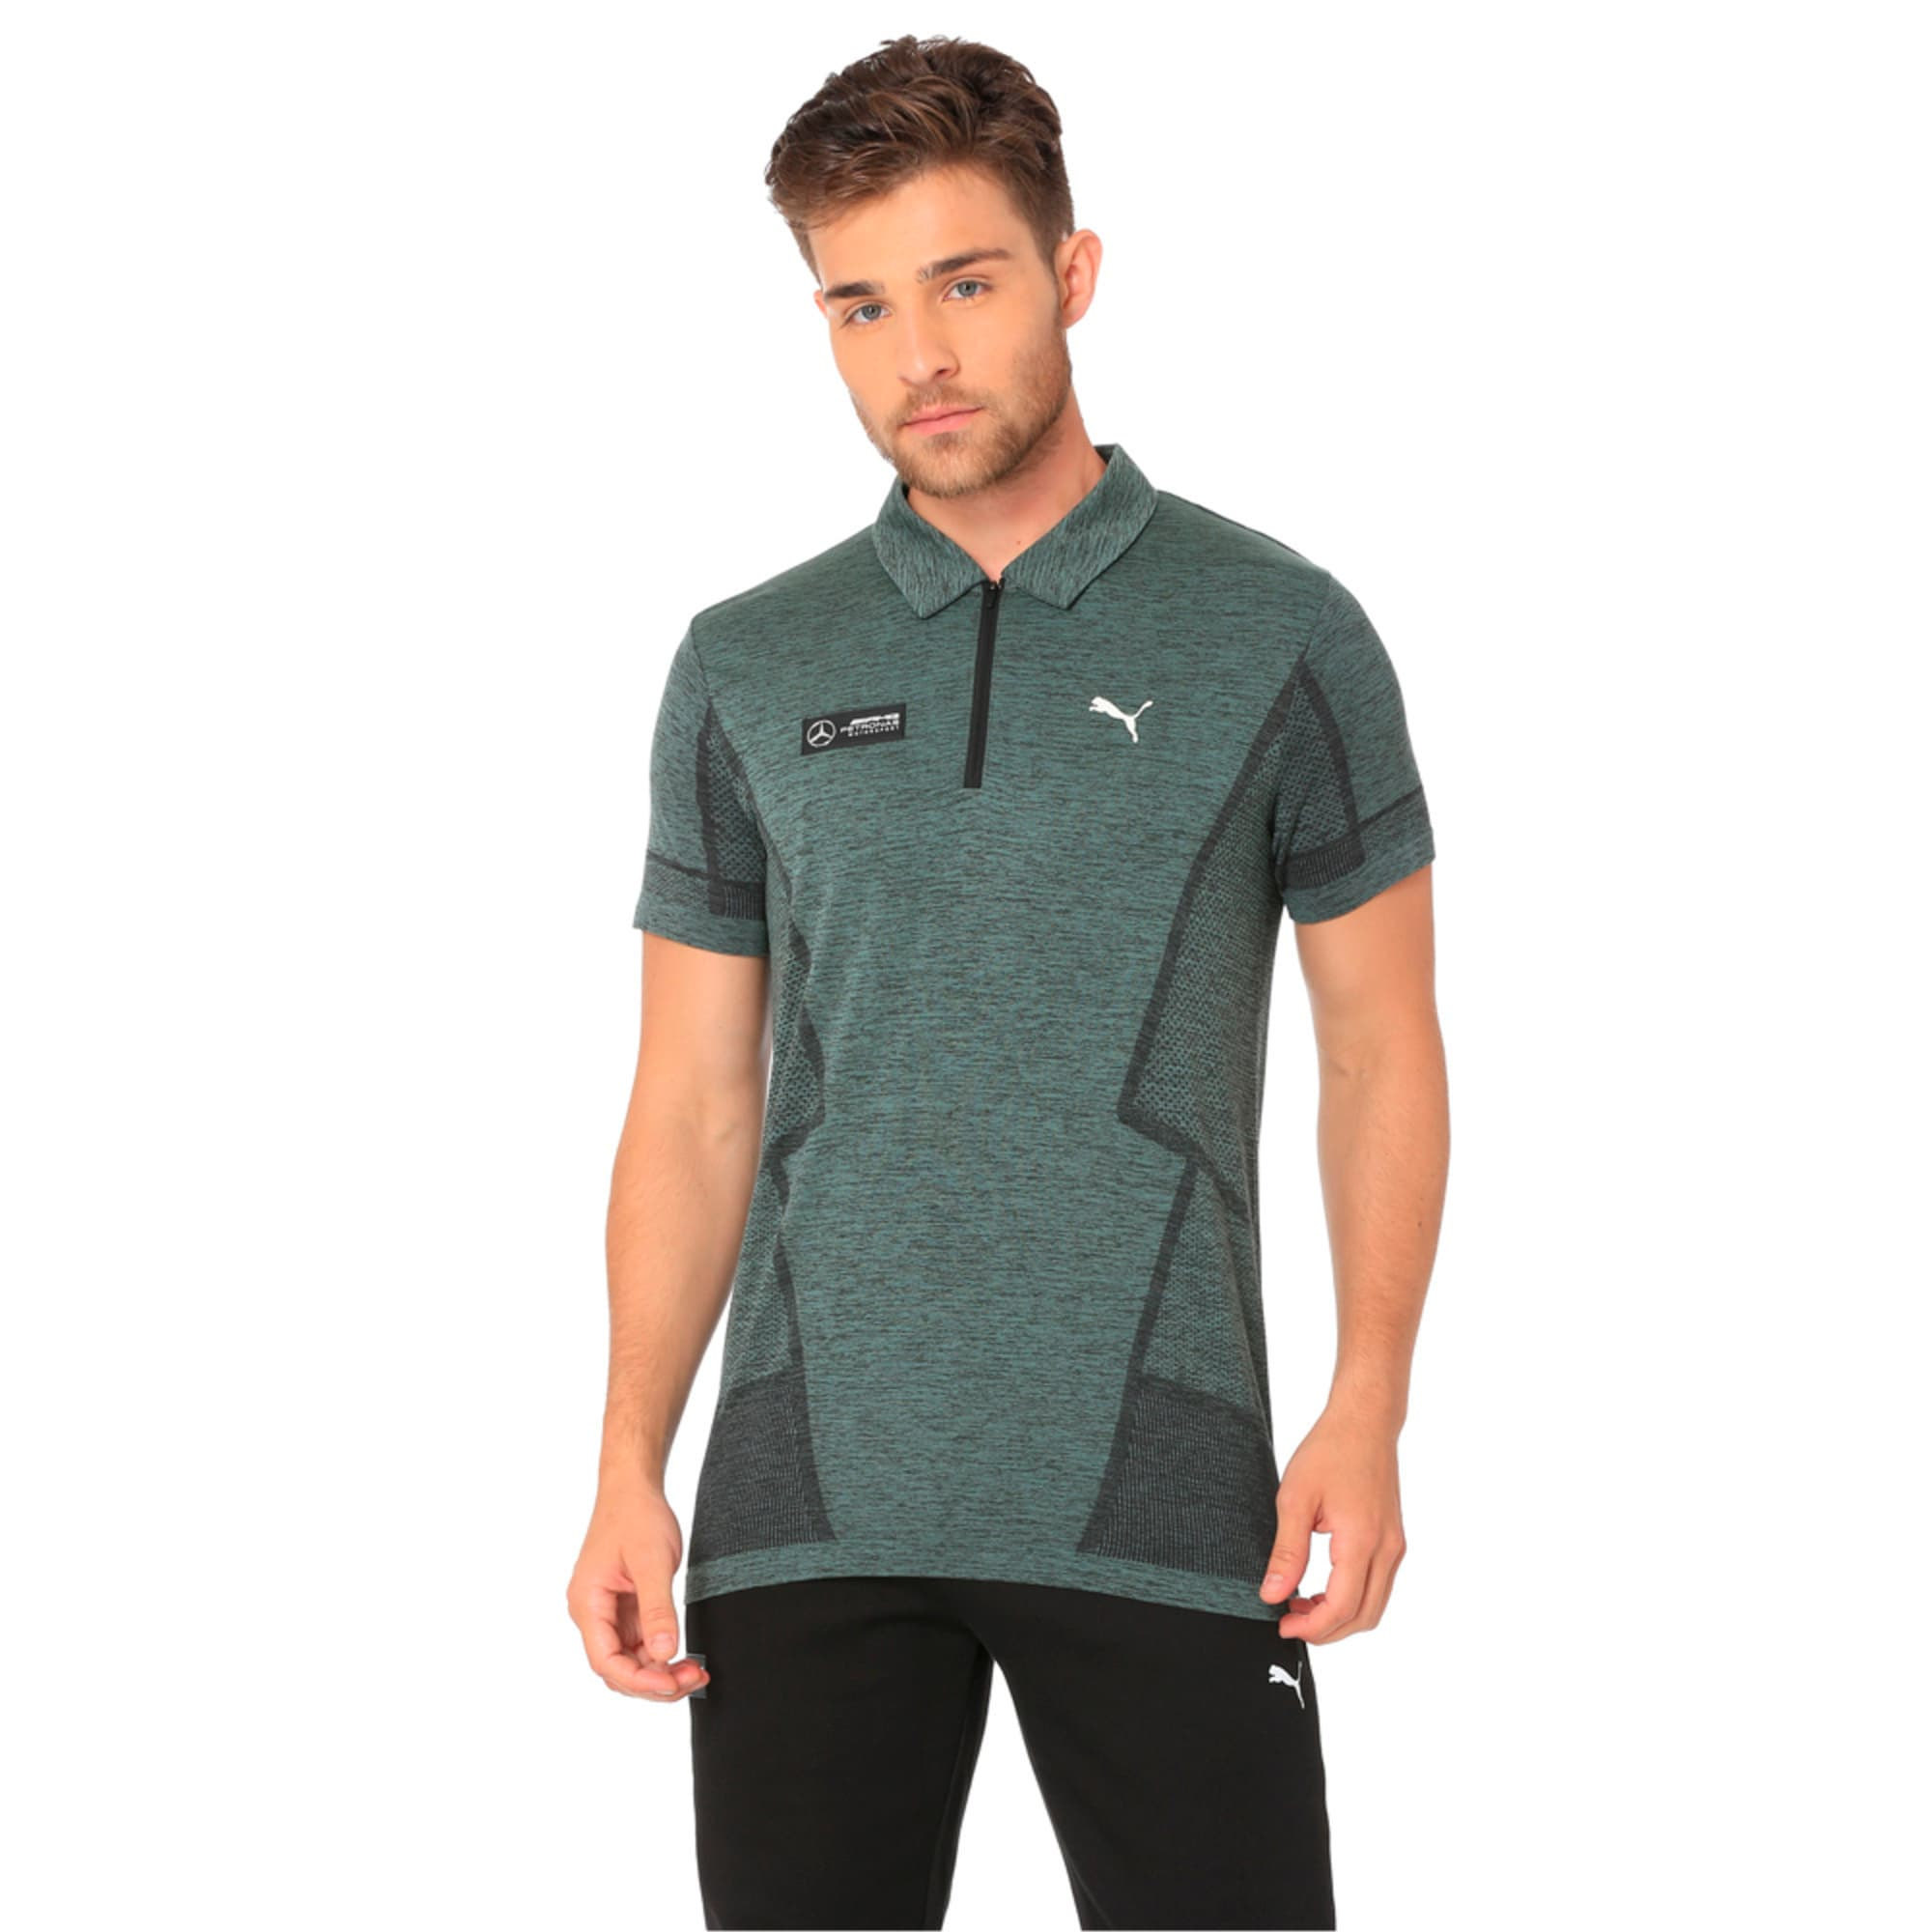 Thumbnail 2 of MERCEDES AMG PETRONAS Men's evoKNIT Polo, Laurel Wreath, medium-IND